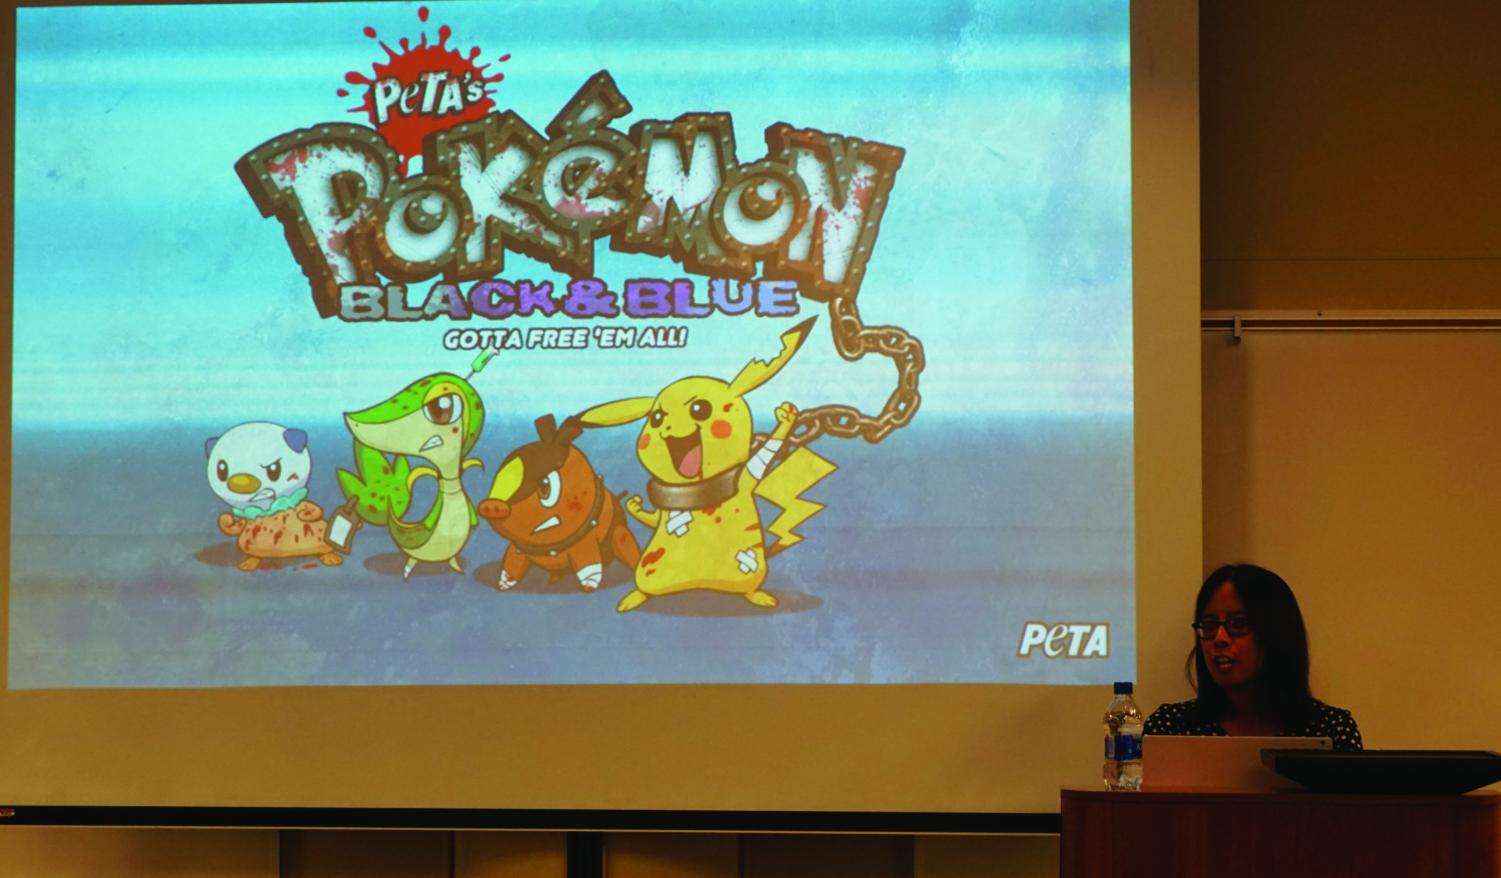 "Alenda Y. Chang talks about the back lash ""Peta's Pokemon Black & Blue, GOTTA FREE 'EM ALL"" received."